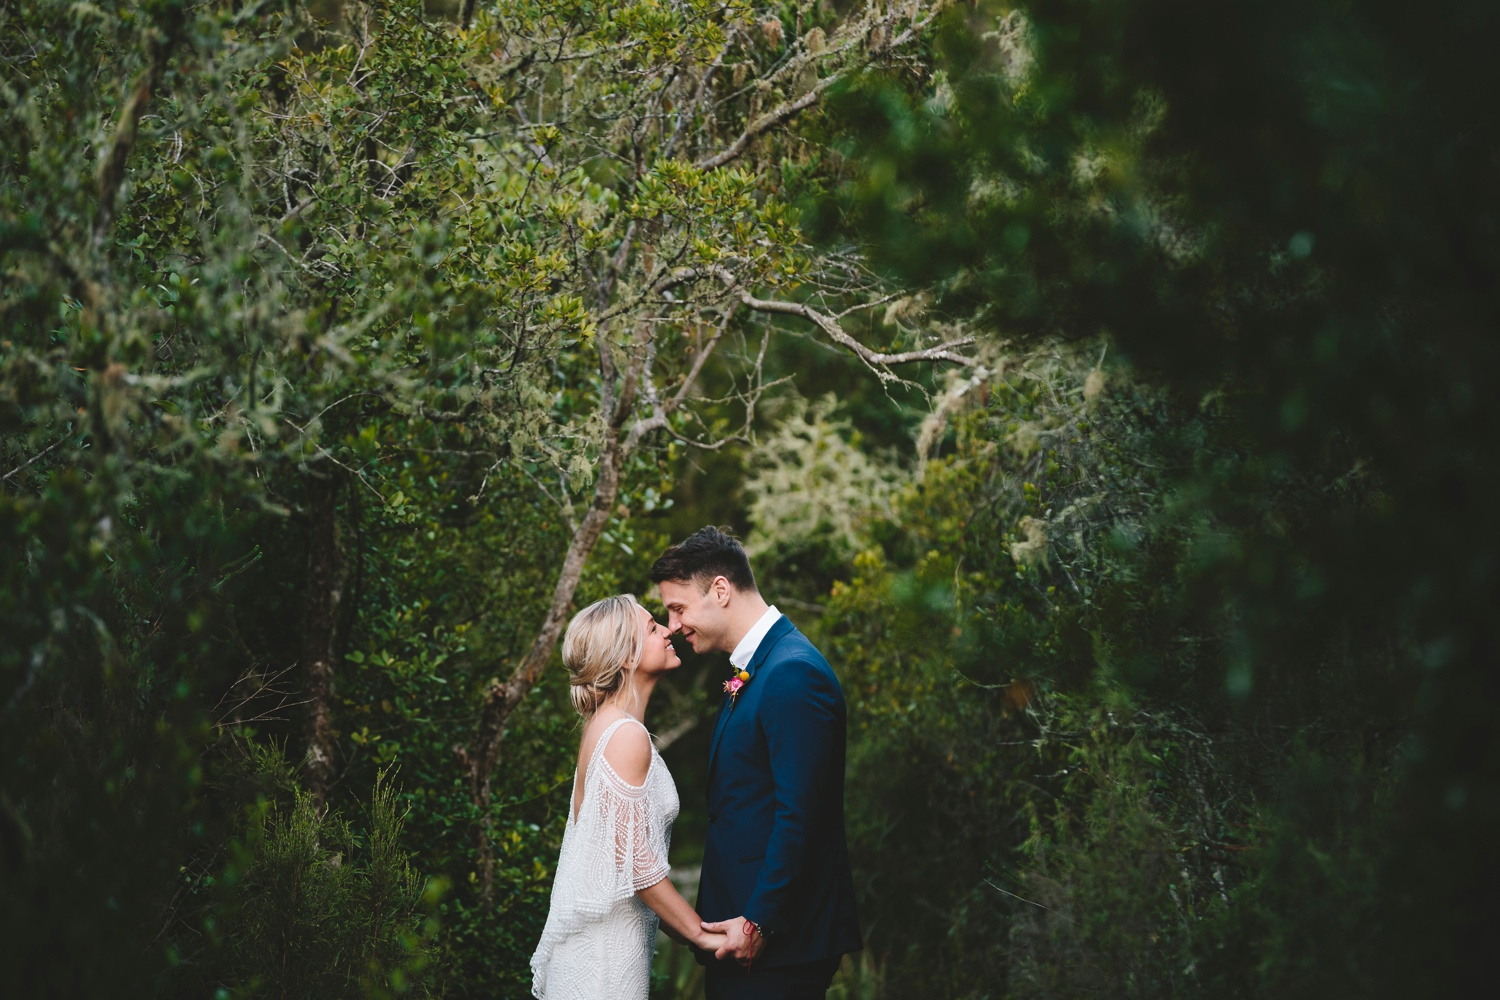 charlie_ray_photography_runaway_romance_elopement_emily_moon_plett_simple_boho_wedding_south_africa_bohemium_0099.jpg